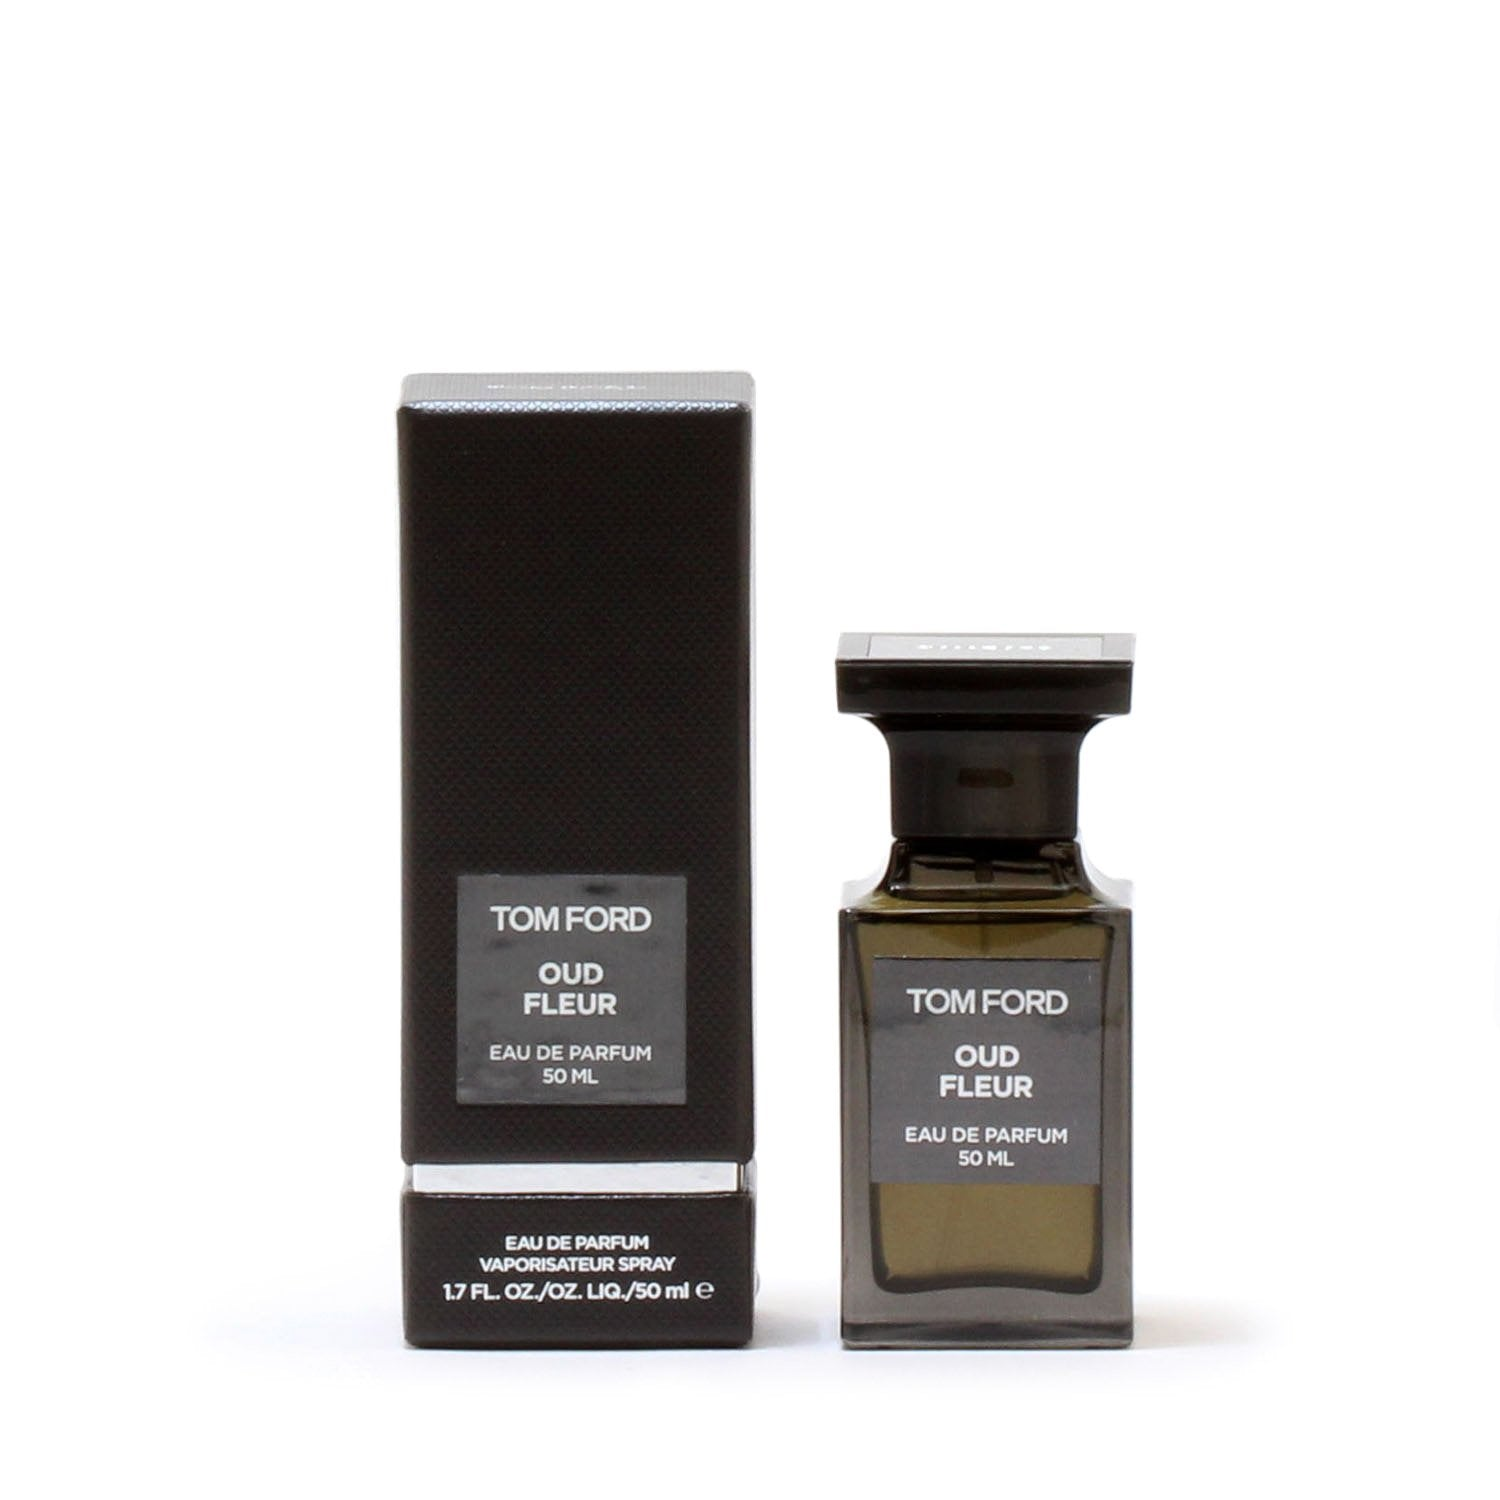 Perfume - TOM FORD OUD FLEUR FOR WOMEN - EAU DE PARFUM SPRAY